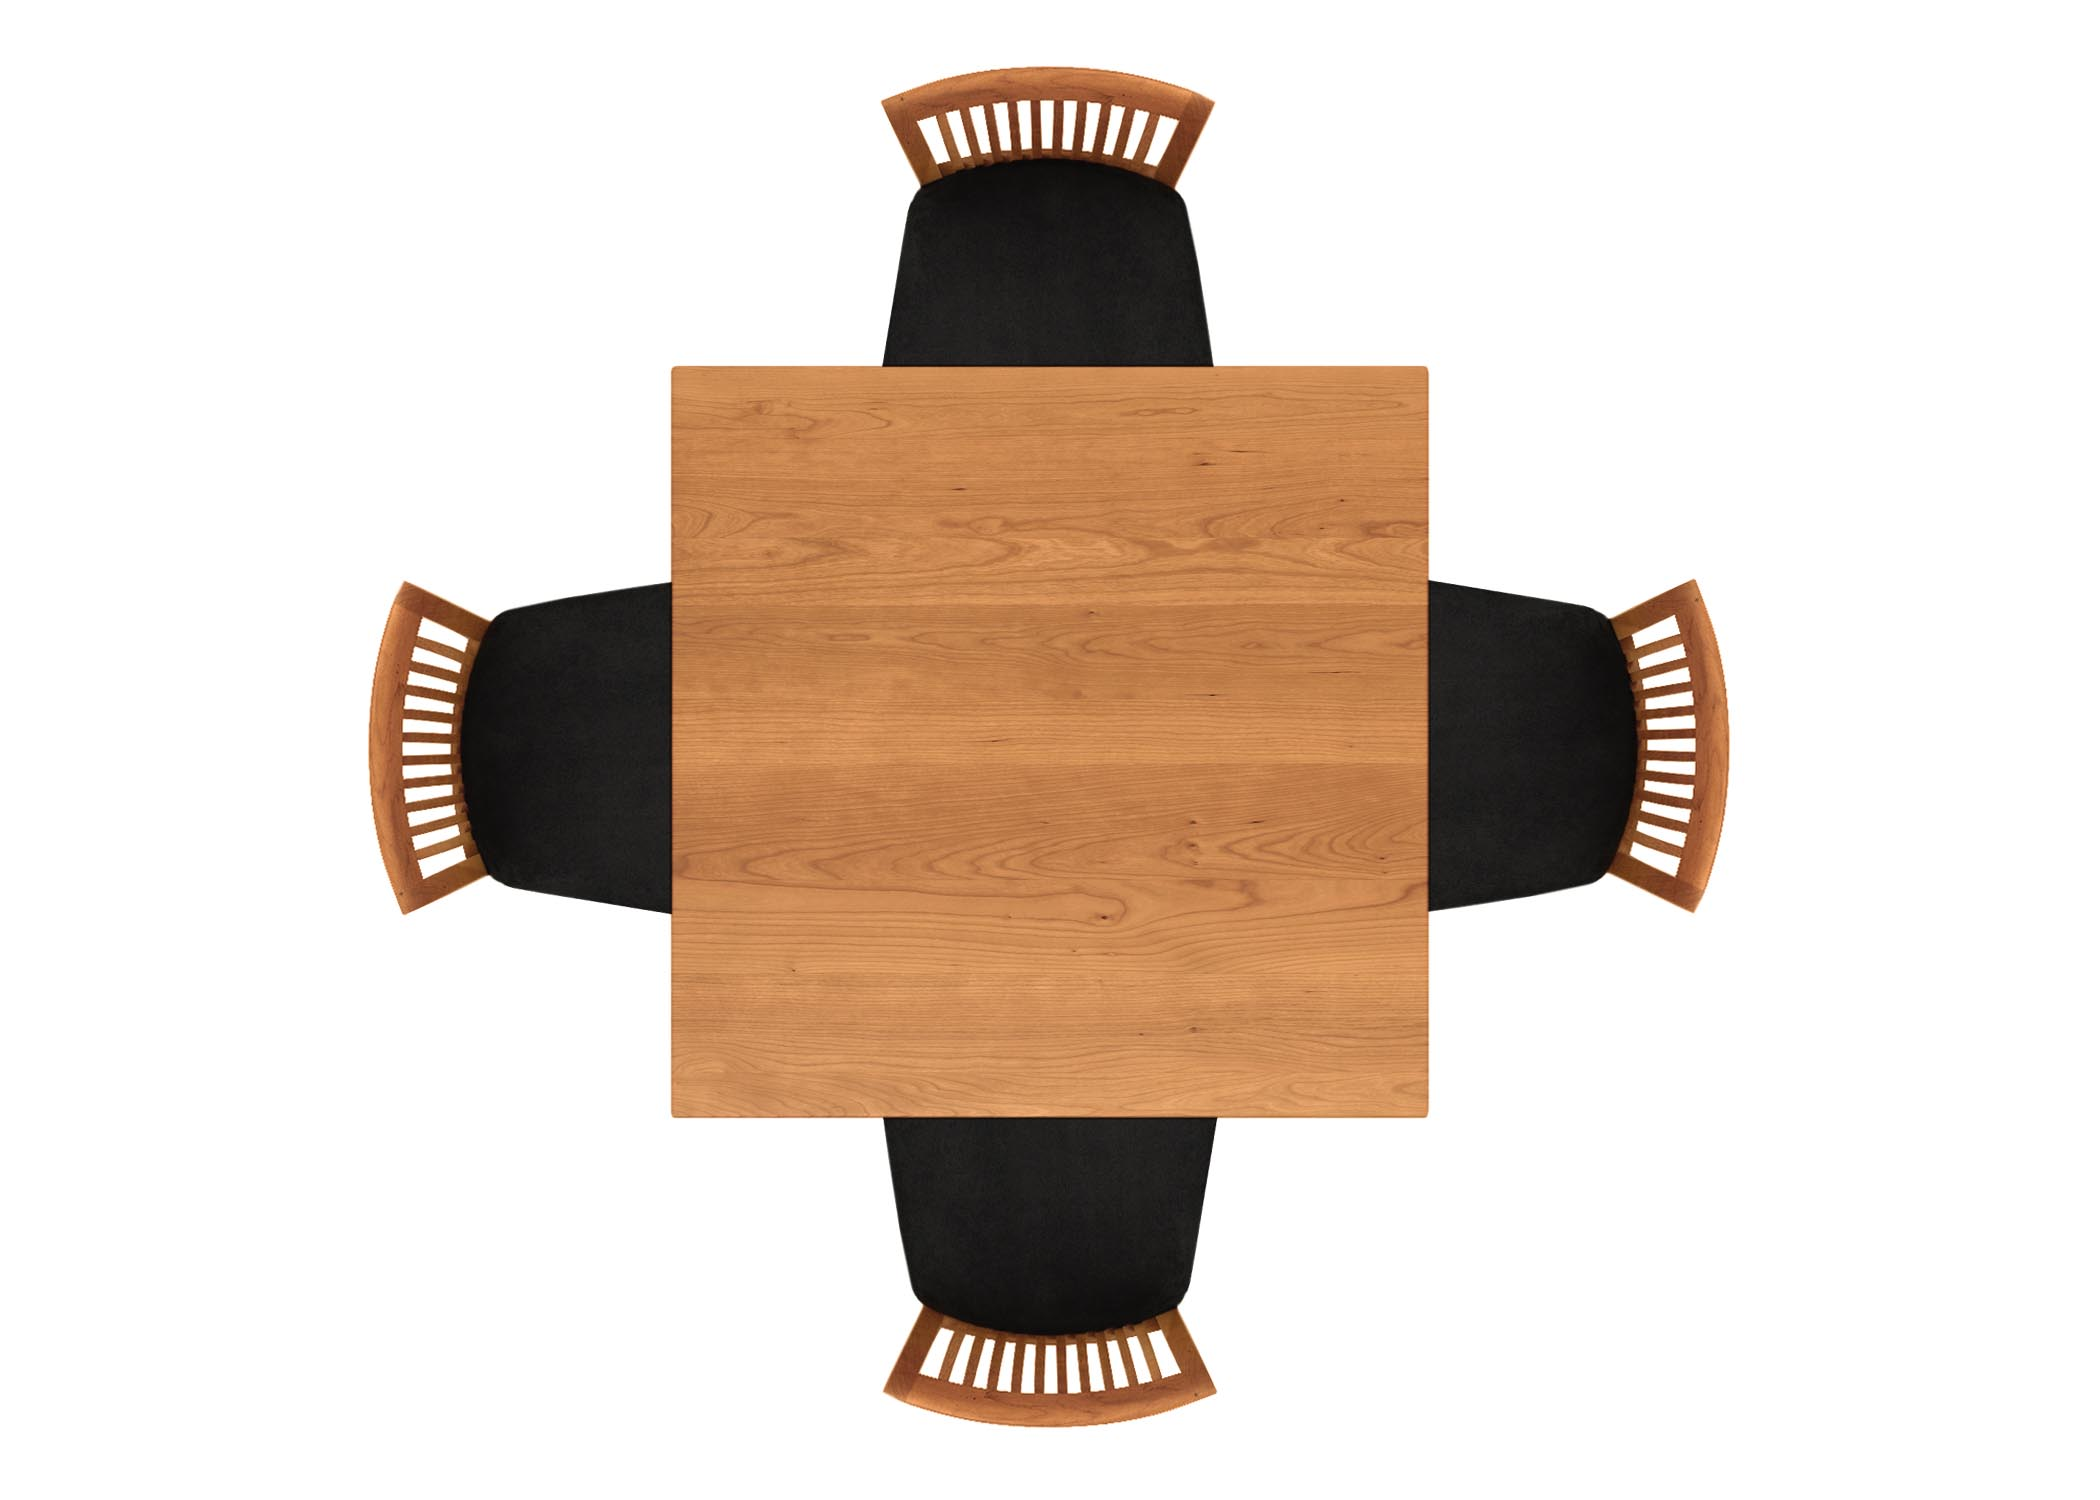 Couch Top View Clipart.